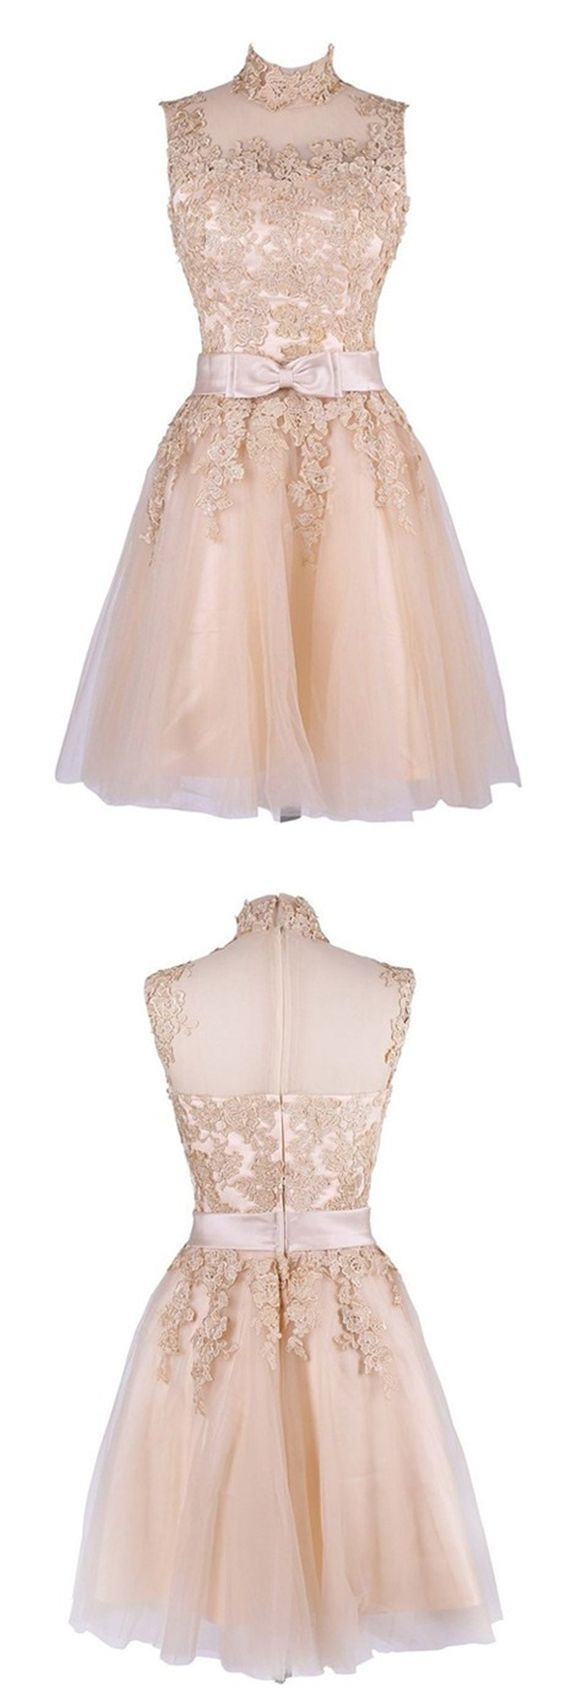 Lace prom dressshort prom dressfashion homecoming dresssexy party